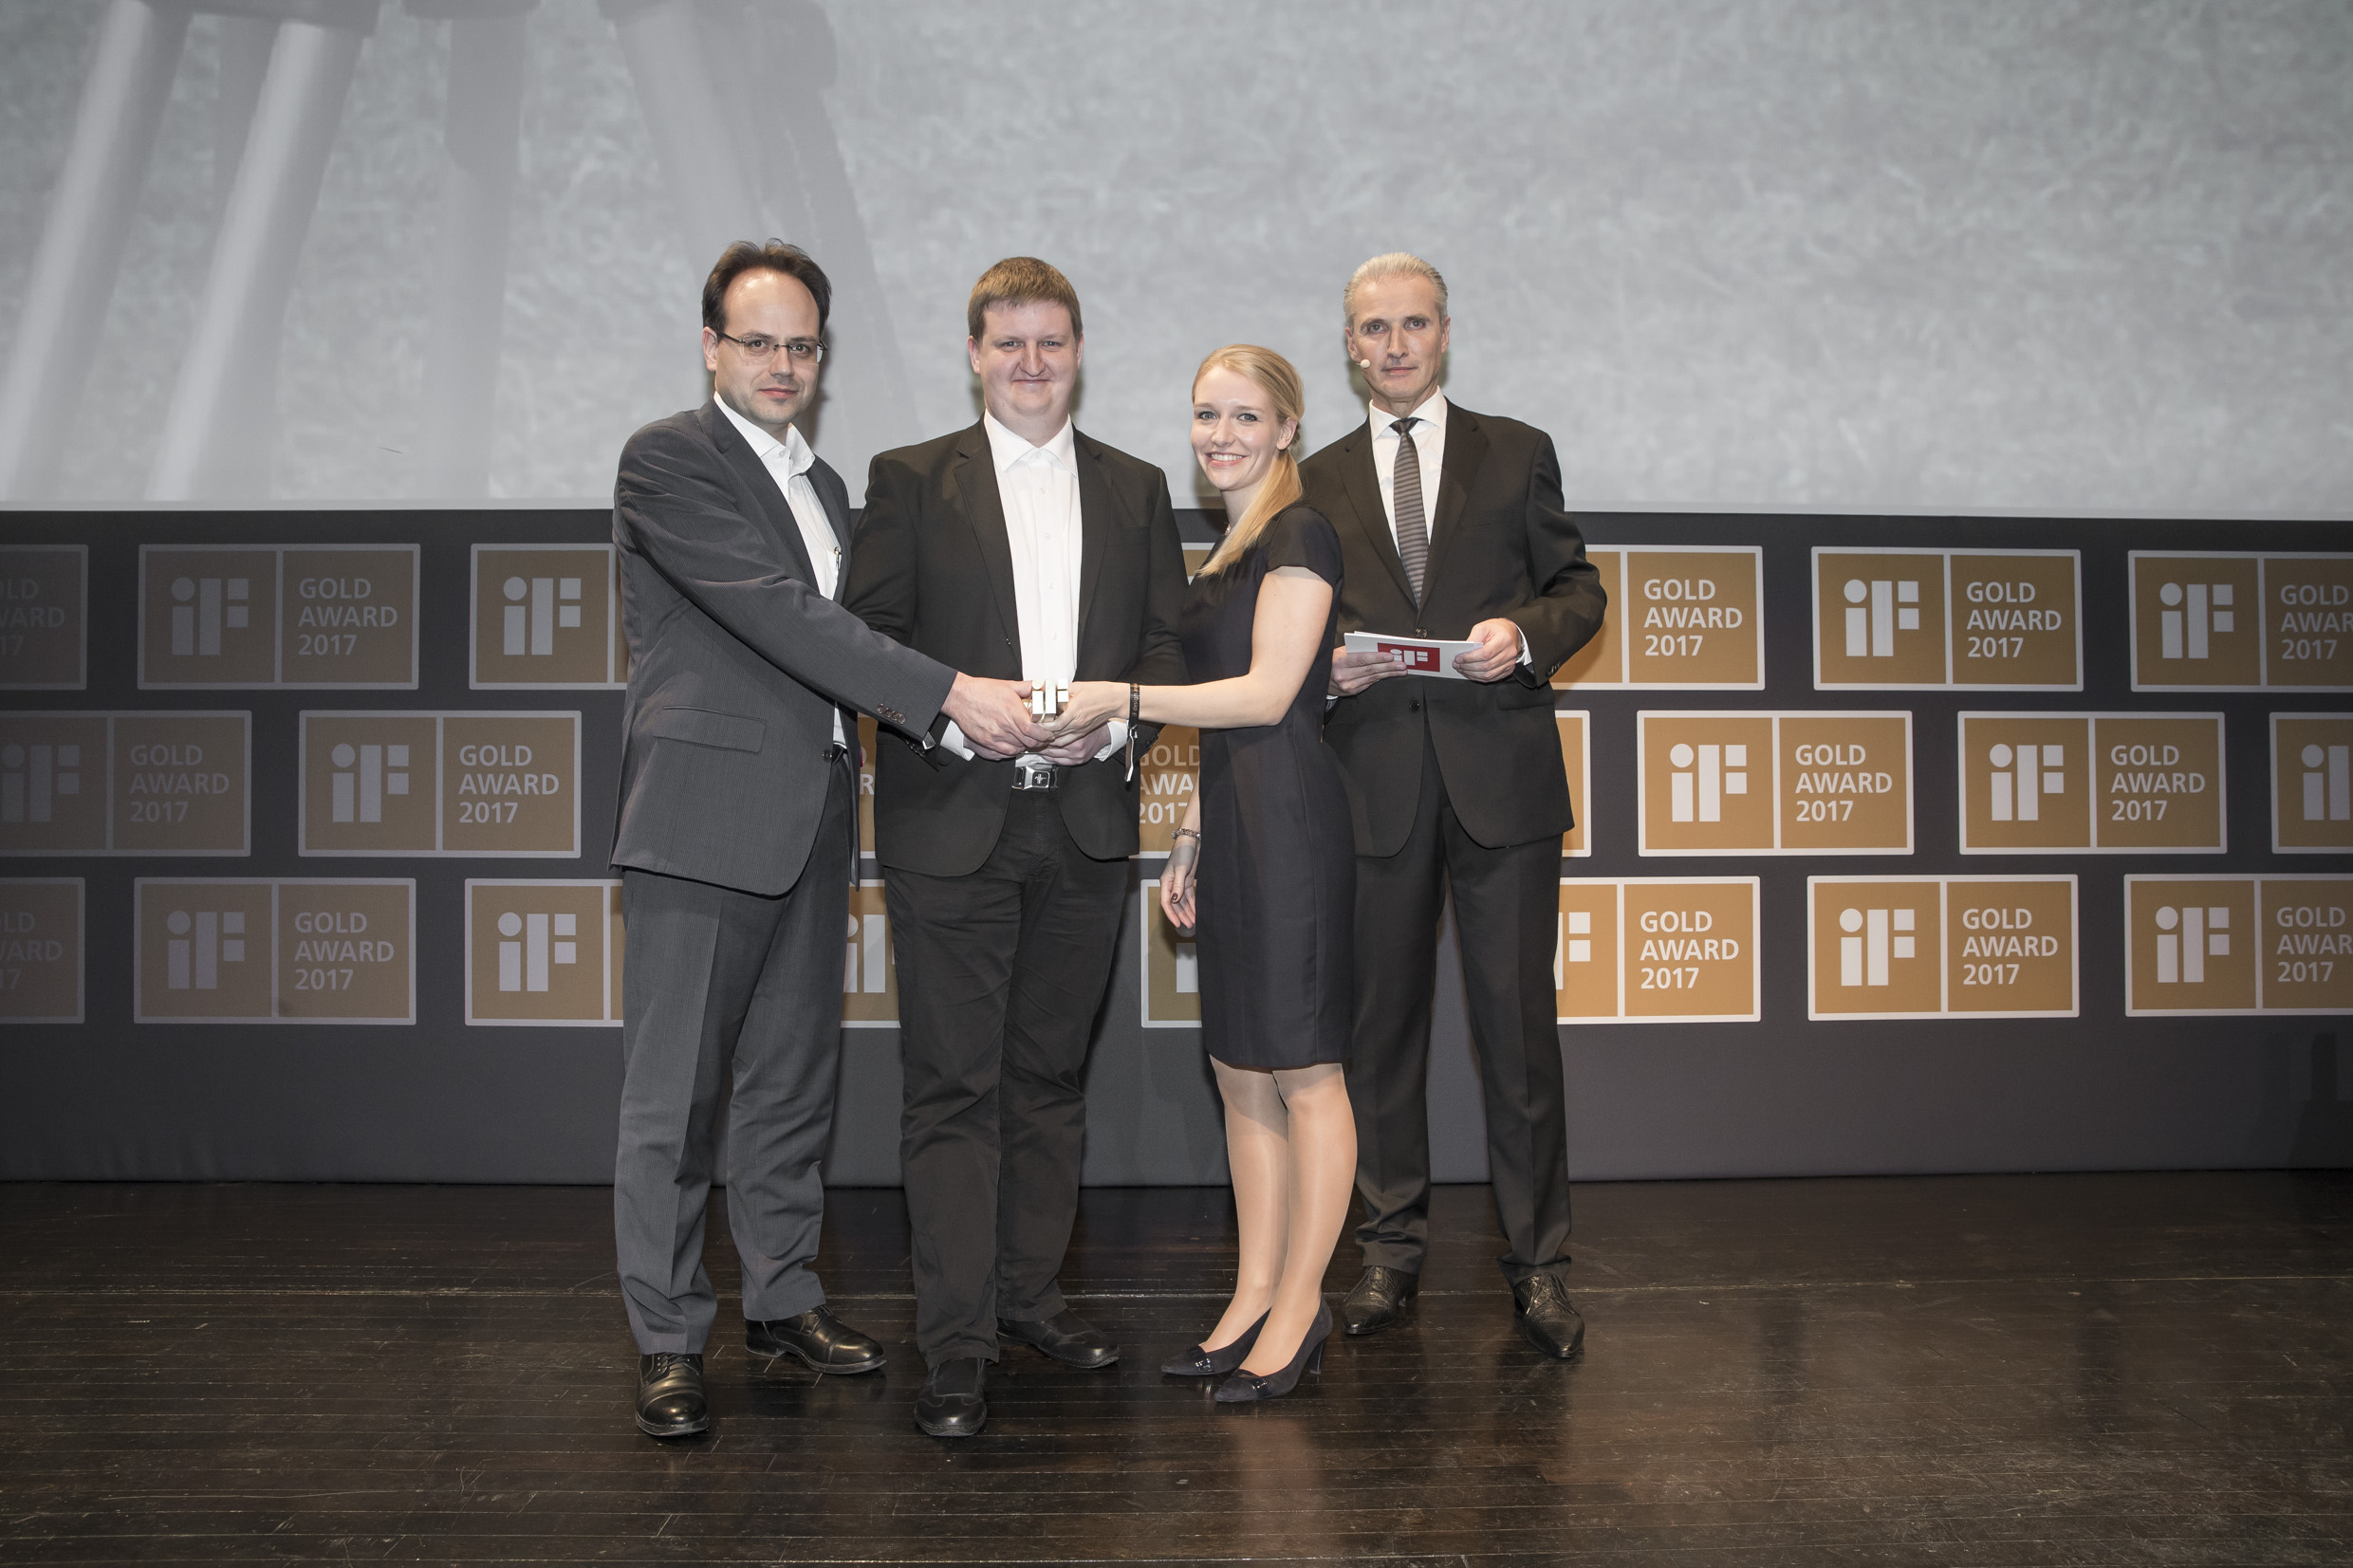 The mobile GPS radio station, RTK FIELD BASE, won gold; from left: Christian Radons (Managing Director, CLAAS E-Systems), Kalle Weiland (System and Software Steering, Precision Applications, CLAAS E-Systems) and Caren Fischer (Marketing, CLAAS E-Systems) received the prize.